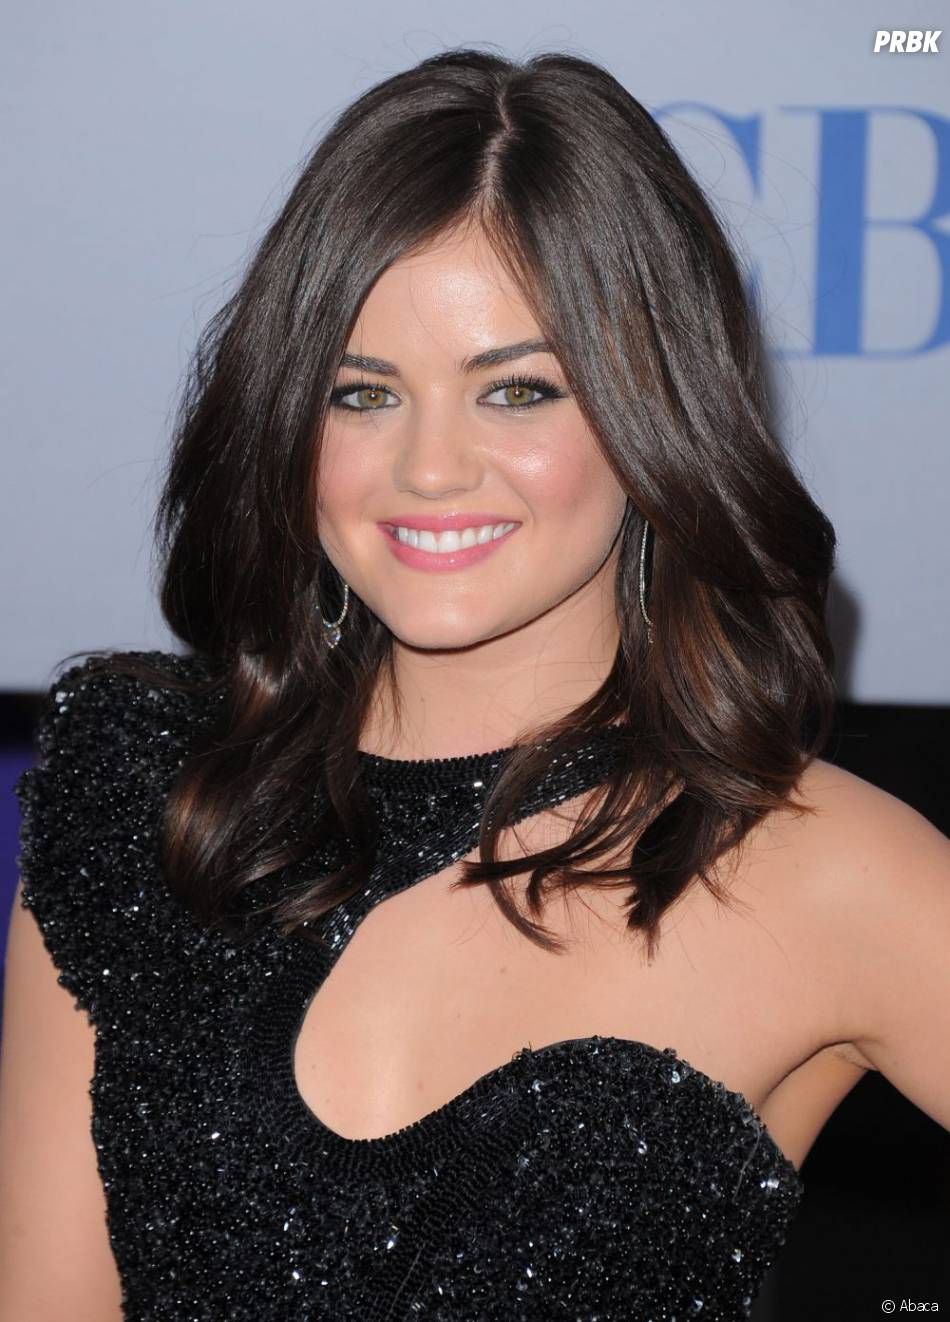 Lucy Hale de Pretty Little Liars aux People's Choice Awards 2012